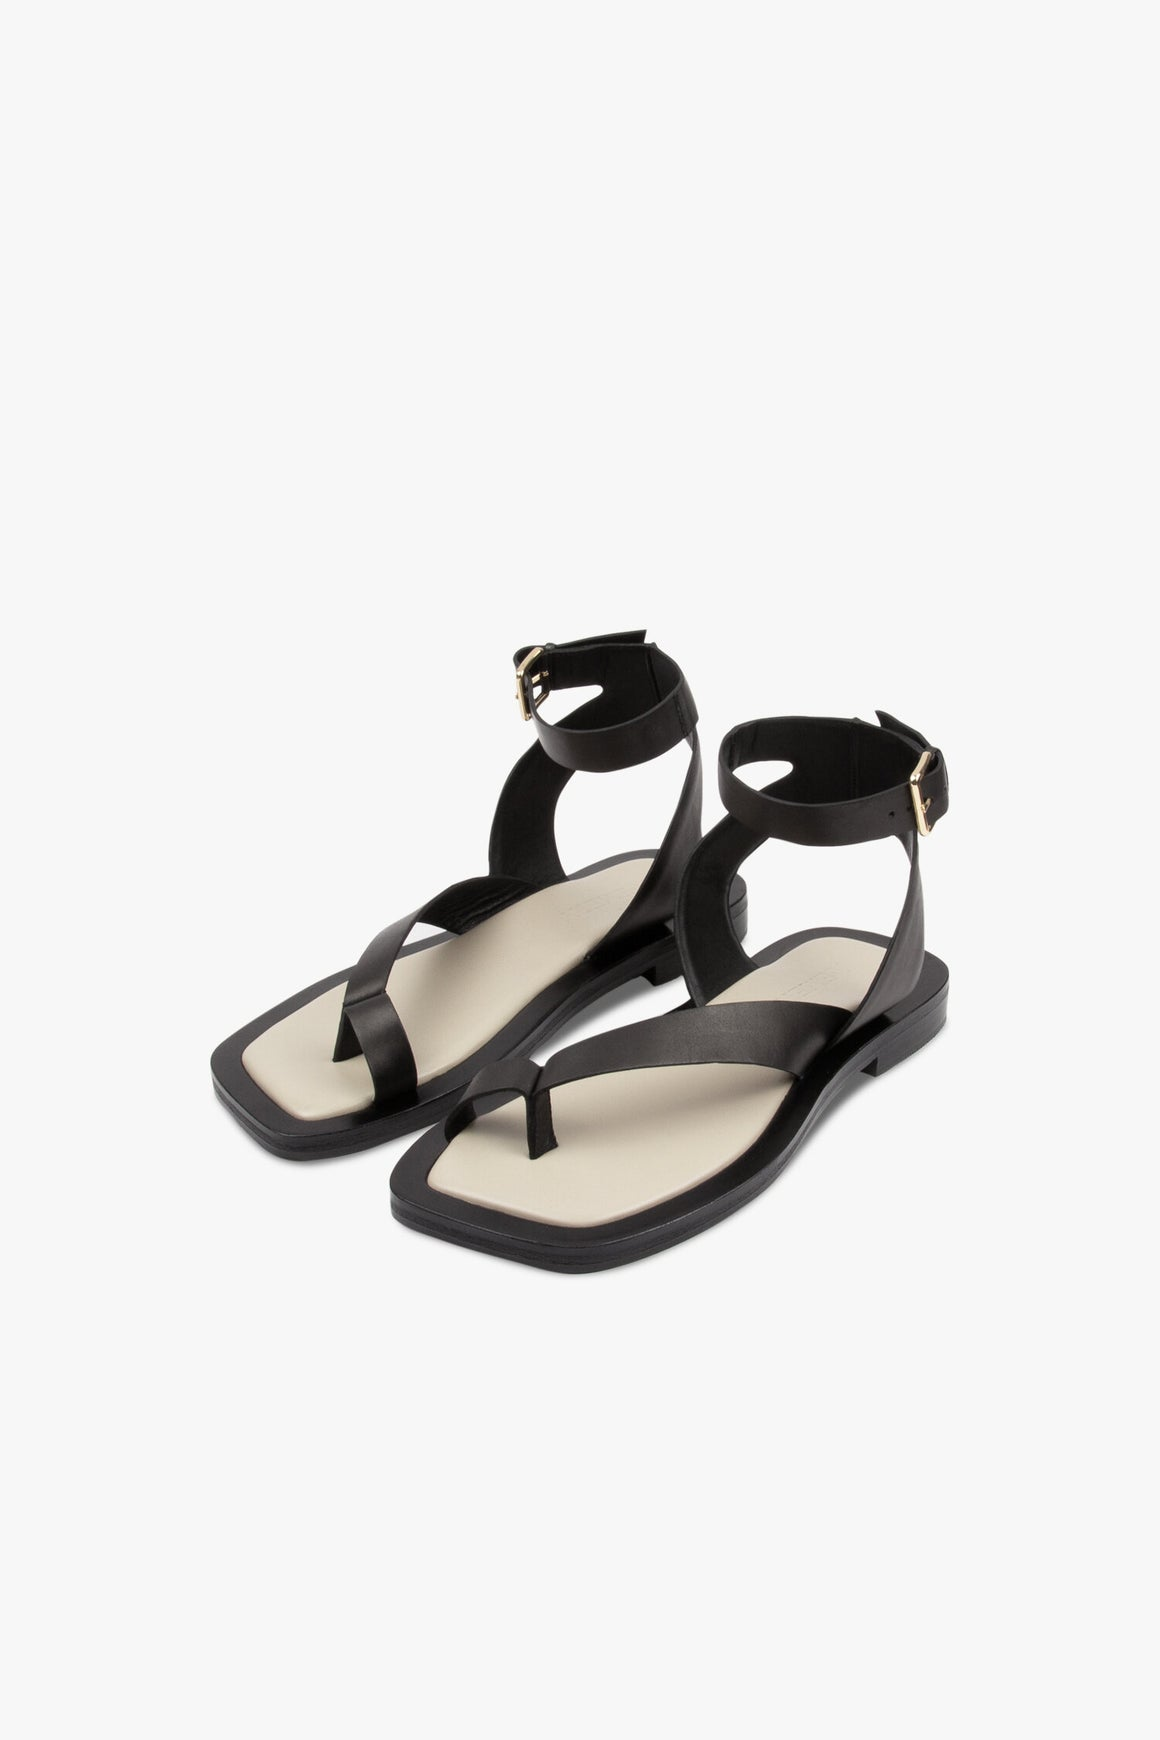 The Asher sandal features a toe hold at front with a sweeping strap across the foot up to a statement ankle strap. Finished with an elevated soft gold buckle.